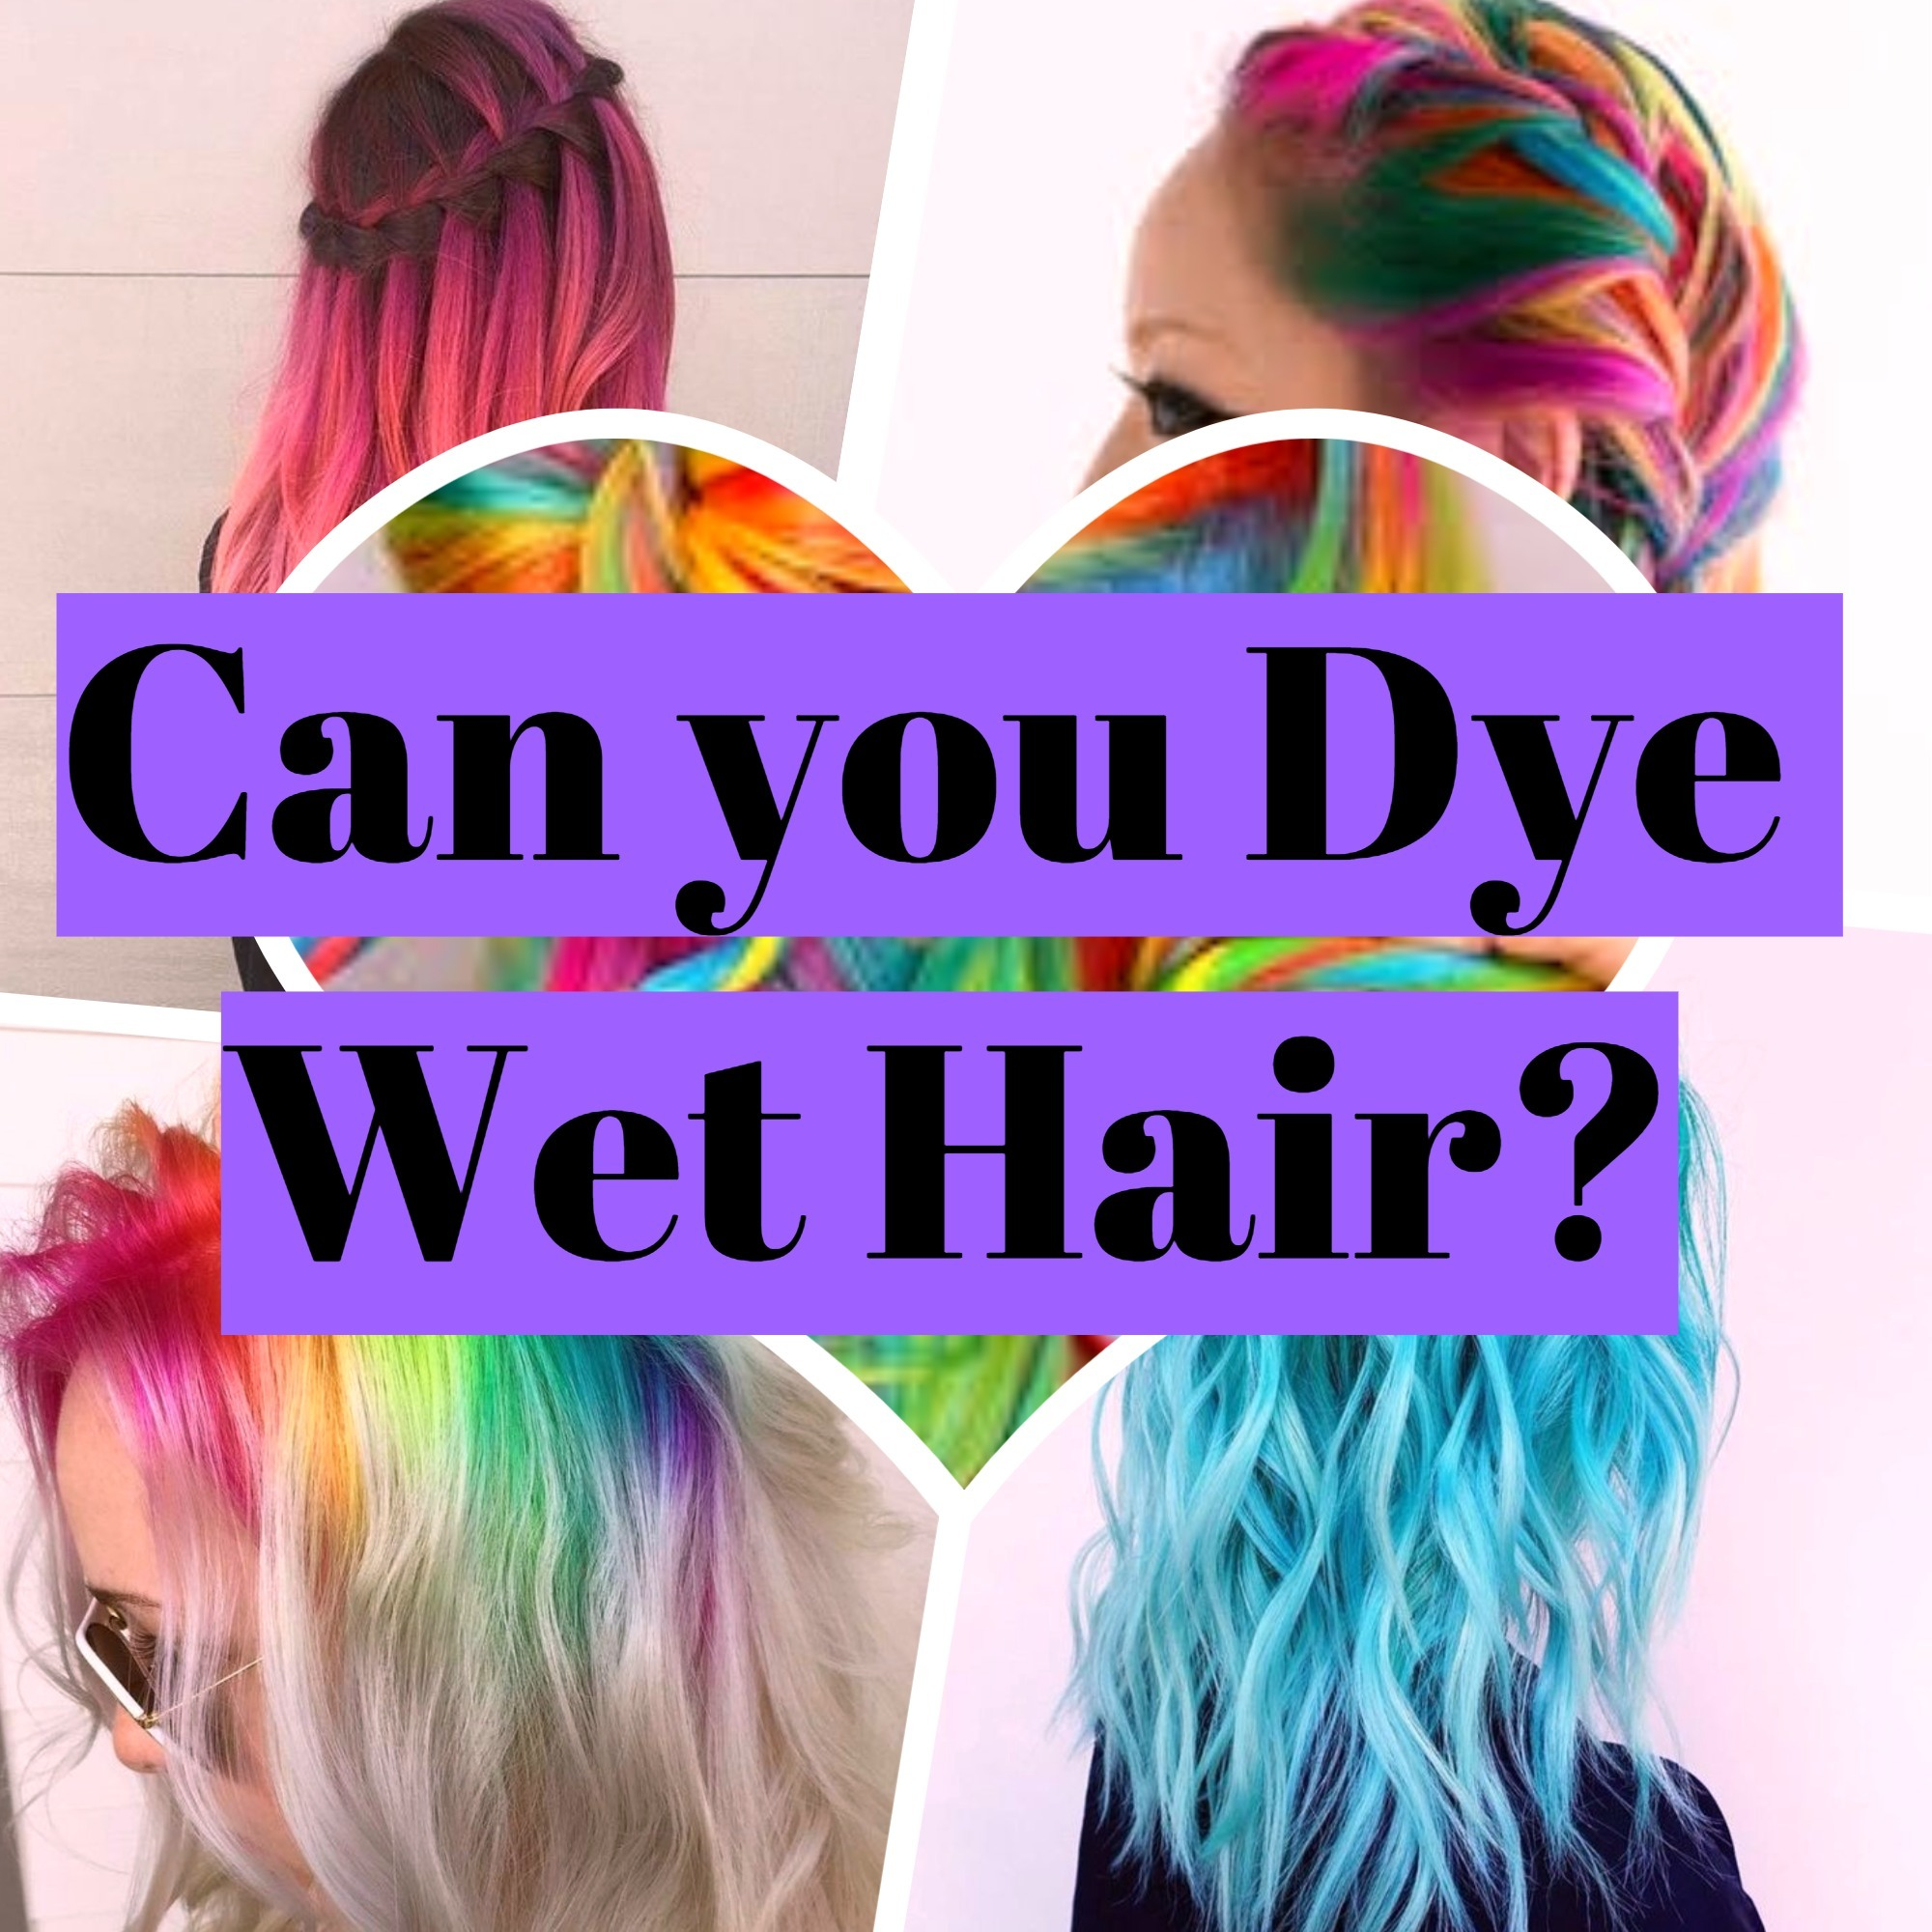 Can you dye wet hair or you have to dry it first? Healthead com